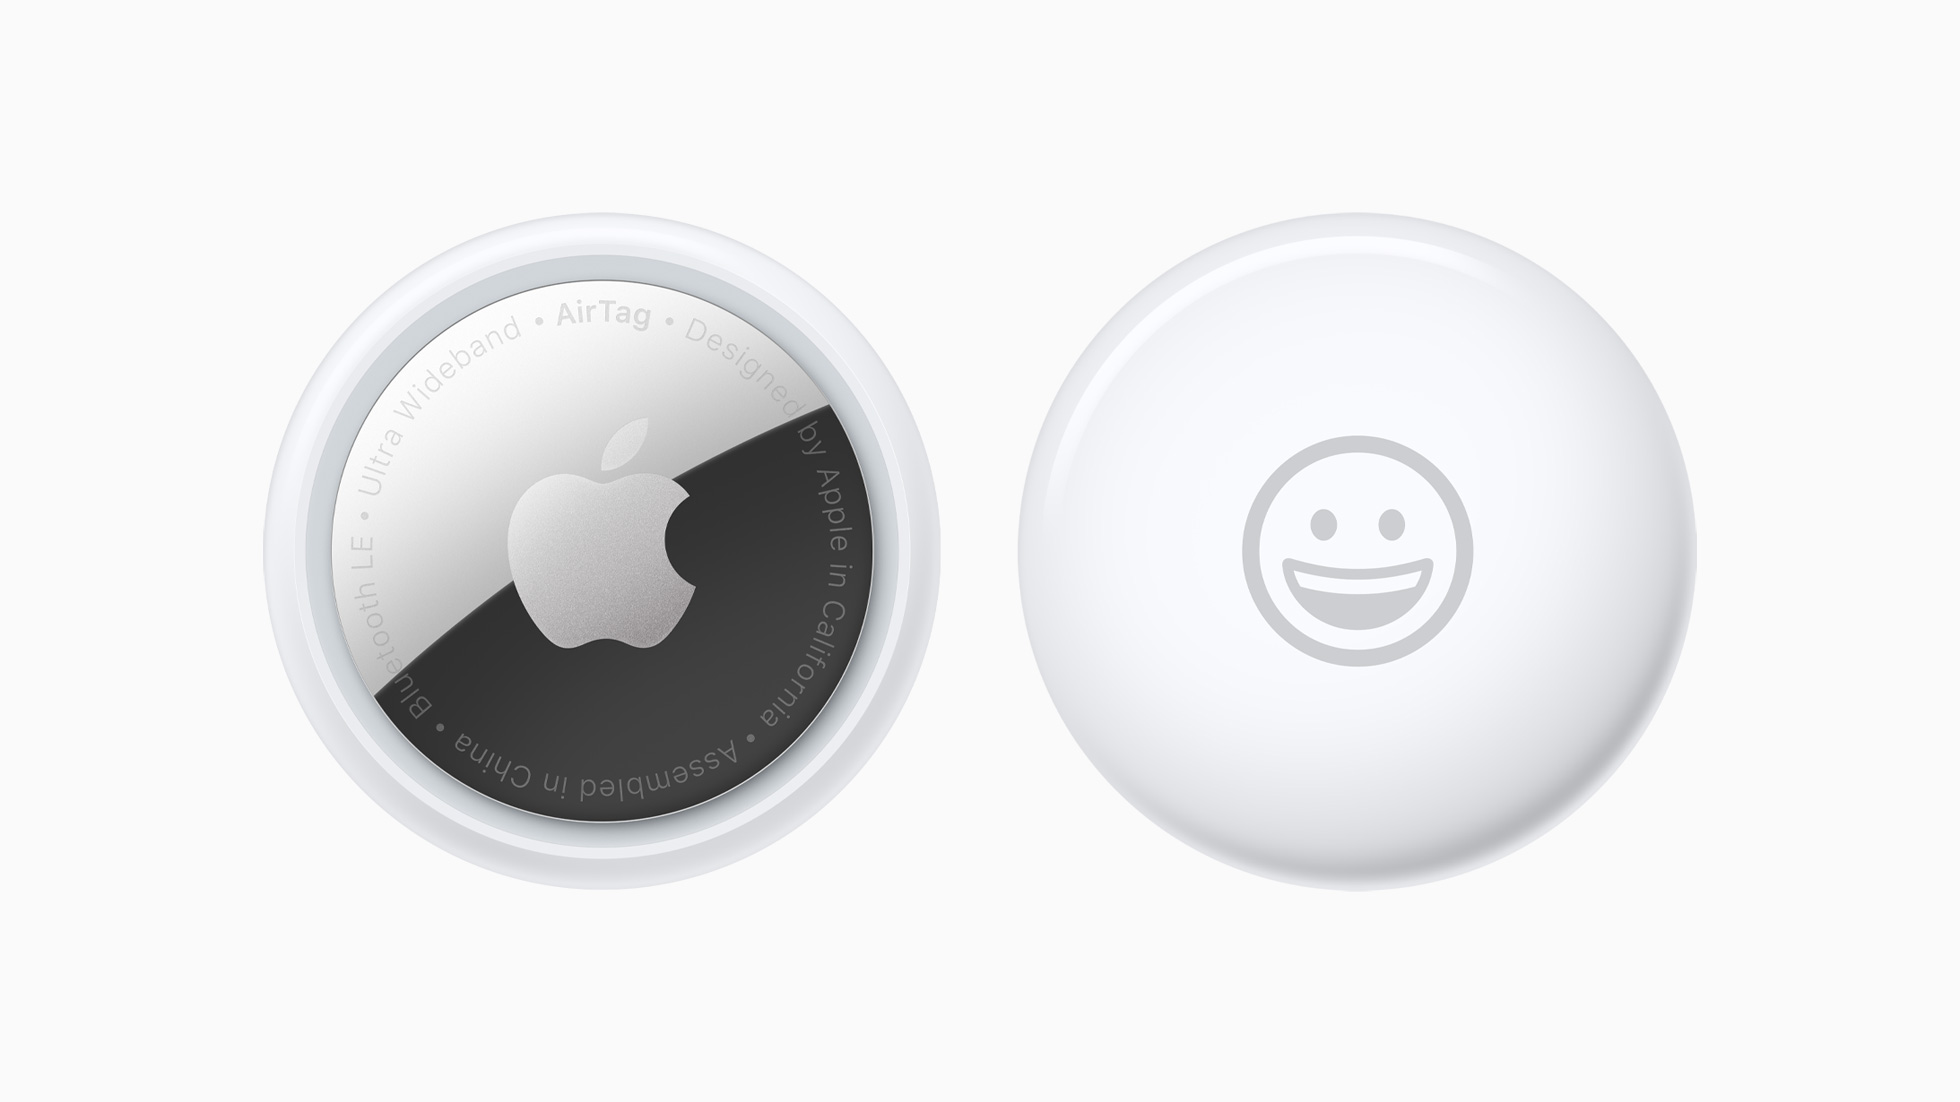 Apple Announces AirTags Bluetooth Tracker, Retails For $29 Each